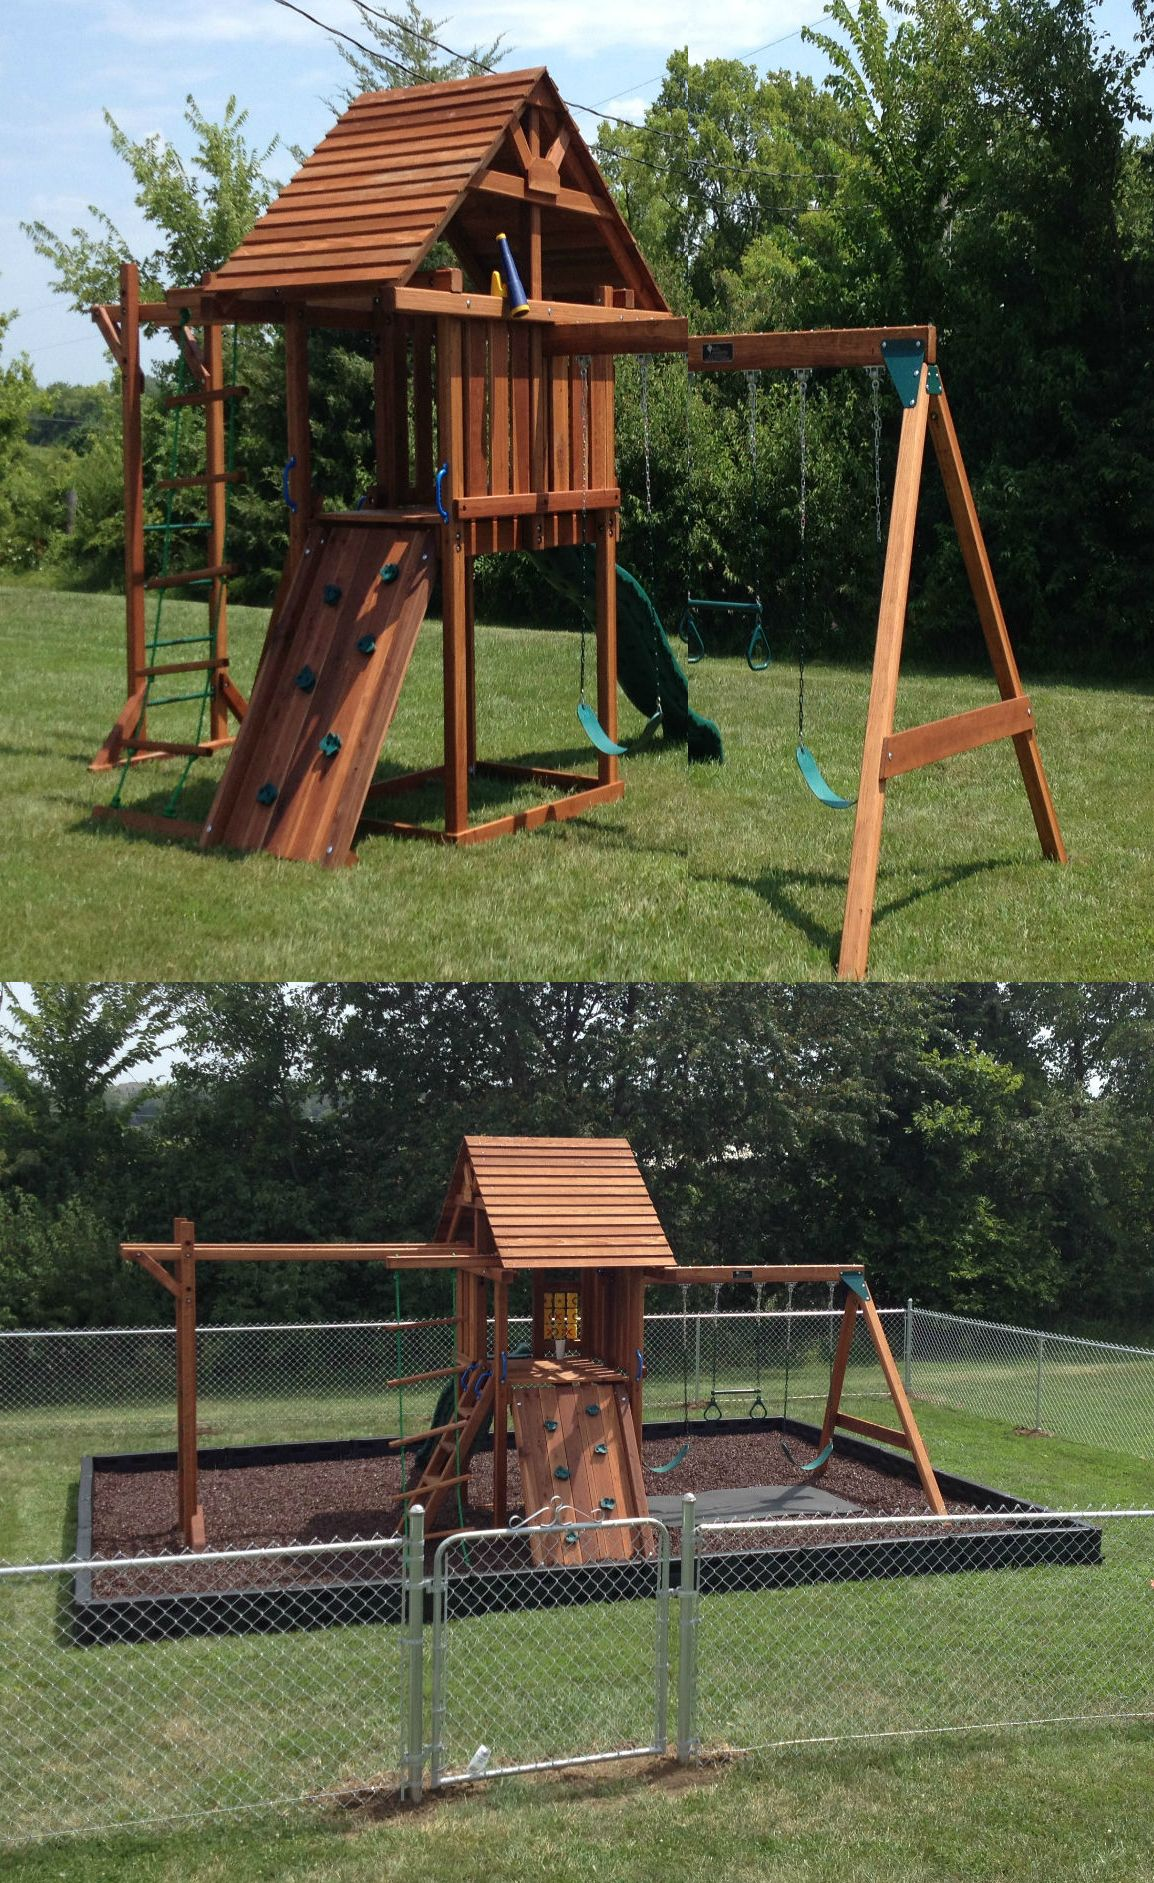 Before and after playground safety using rubber mulch